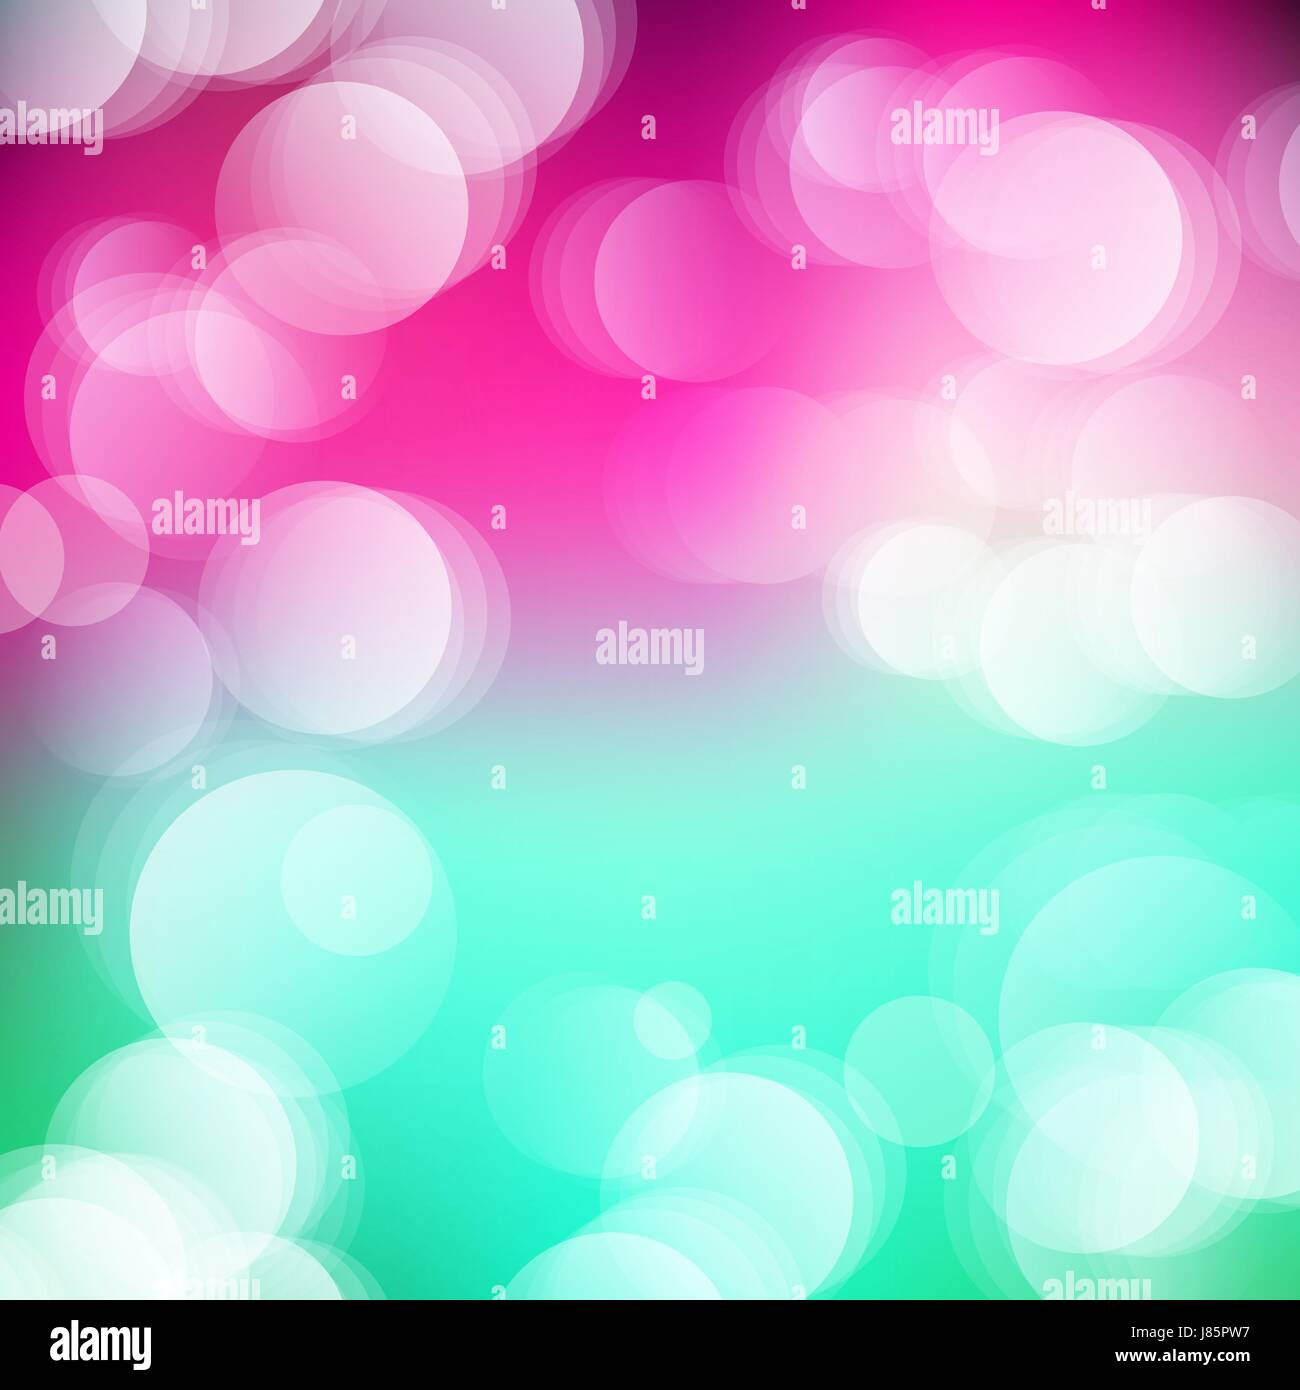 Vector Abstract Defocused Bokeh Lights Background Festive Blurred With Effect For Holidays Parties Birthdays